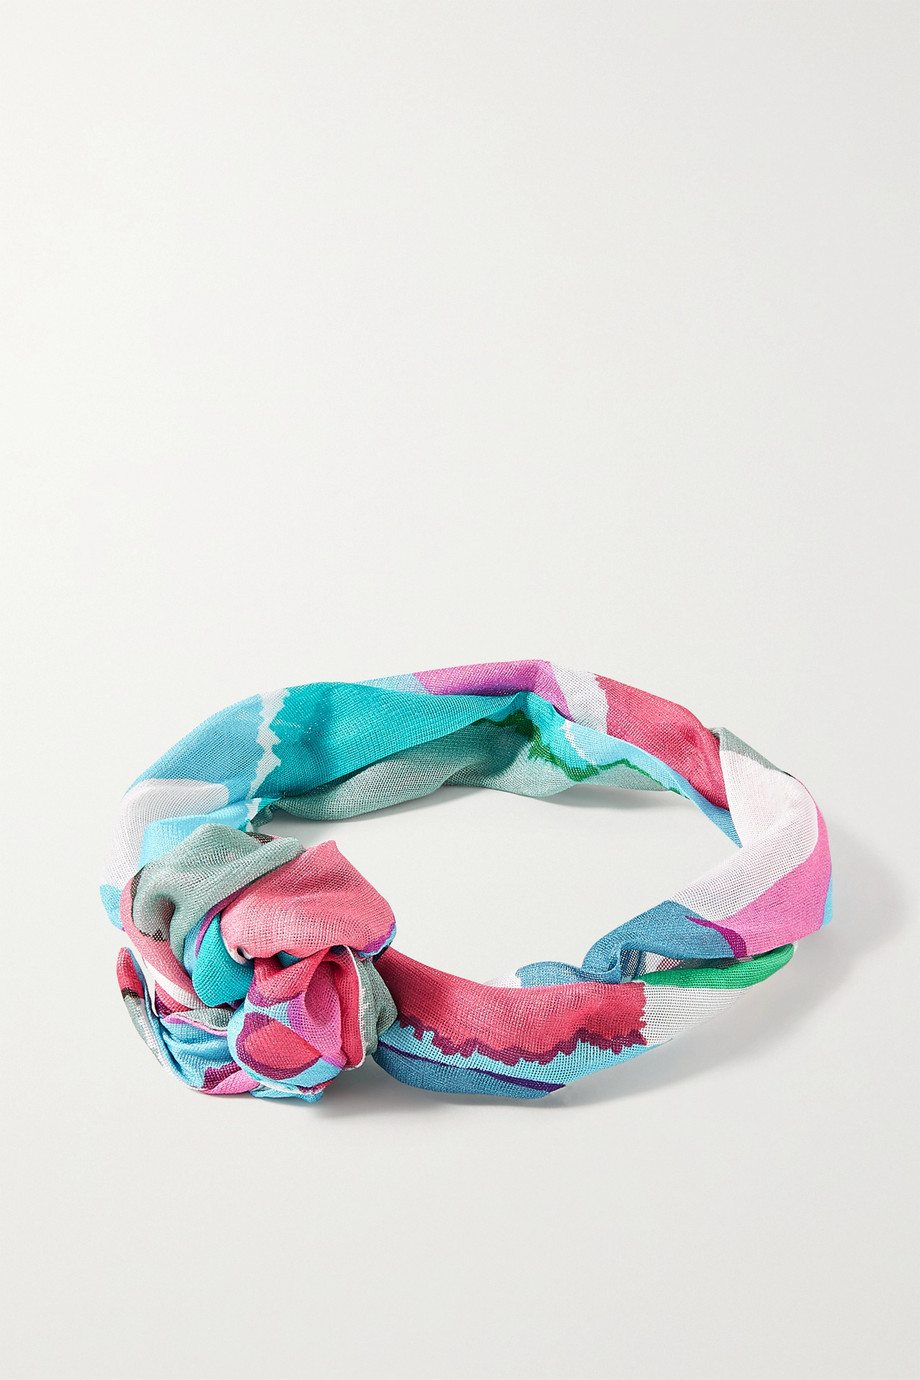 Cult Gaia Turband printed silk-gauze headband